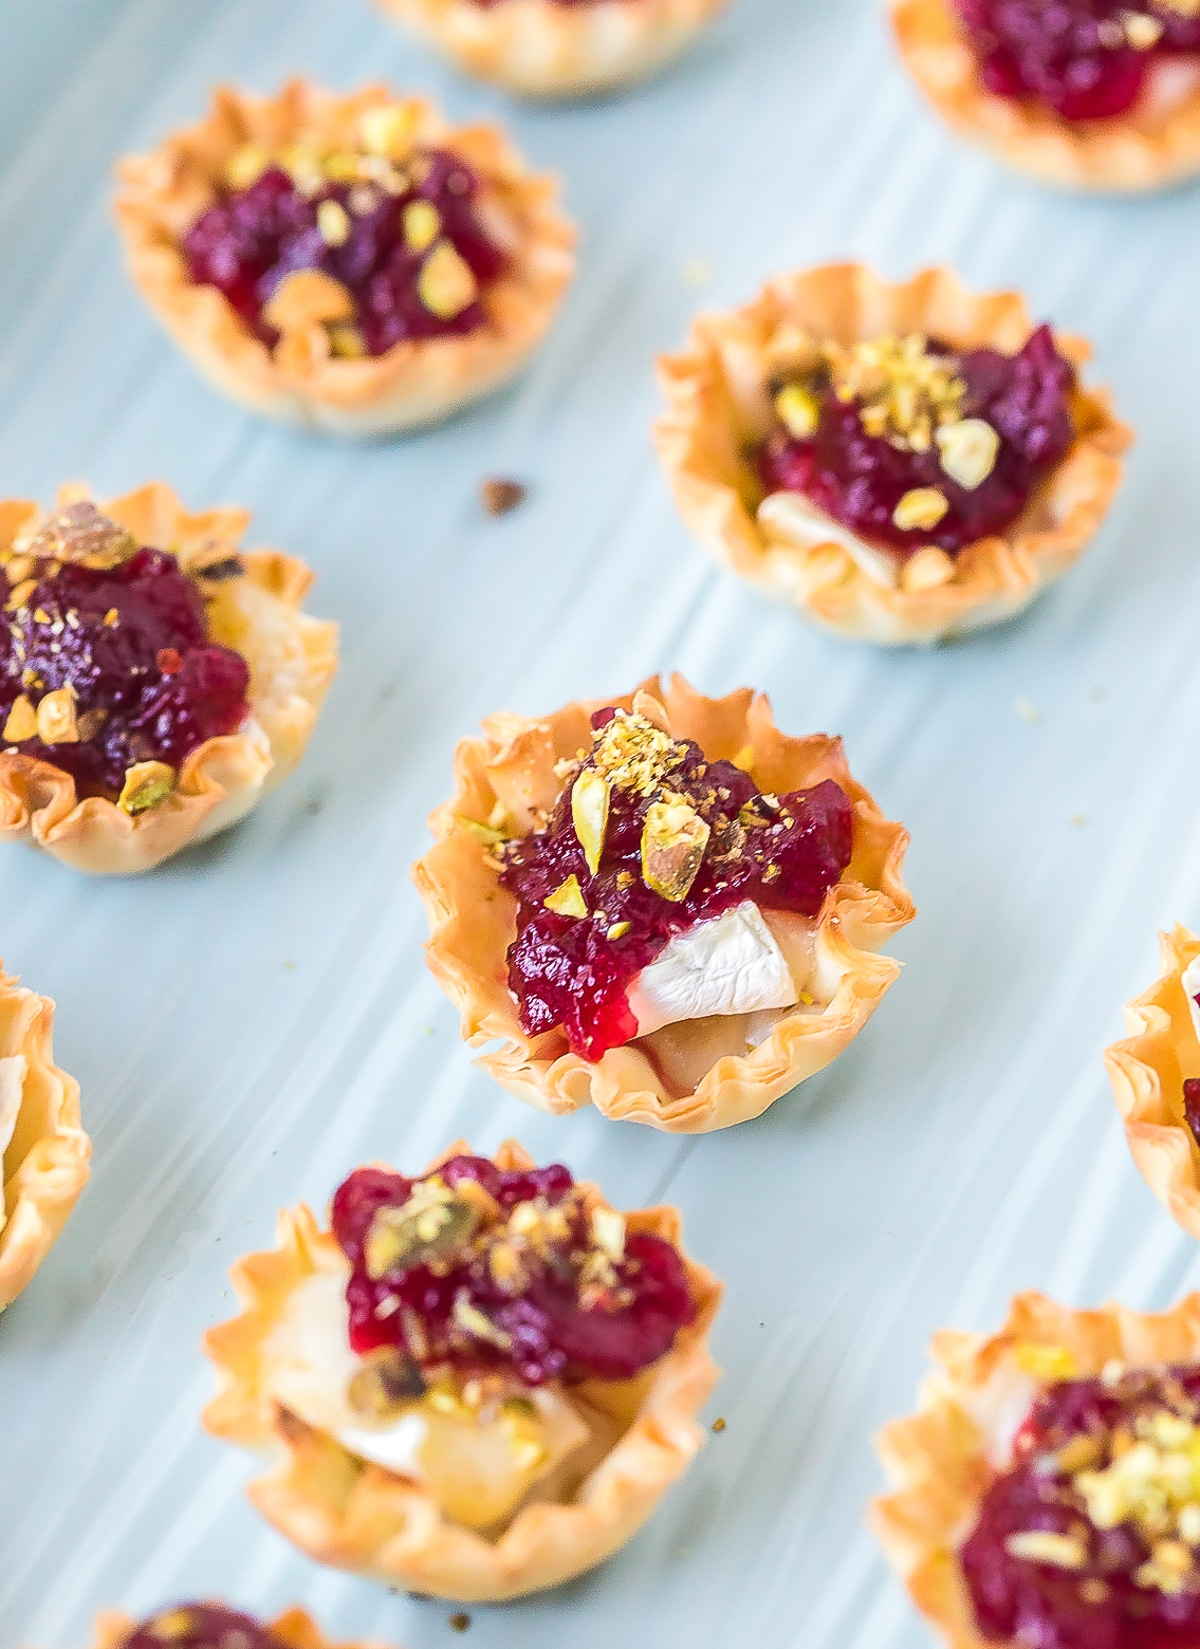 Mini Baked Brie Bites with Cranberry Sauce Recipe #ASpicyPerspective #brie #baked #cranberry